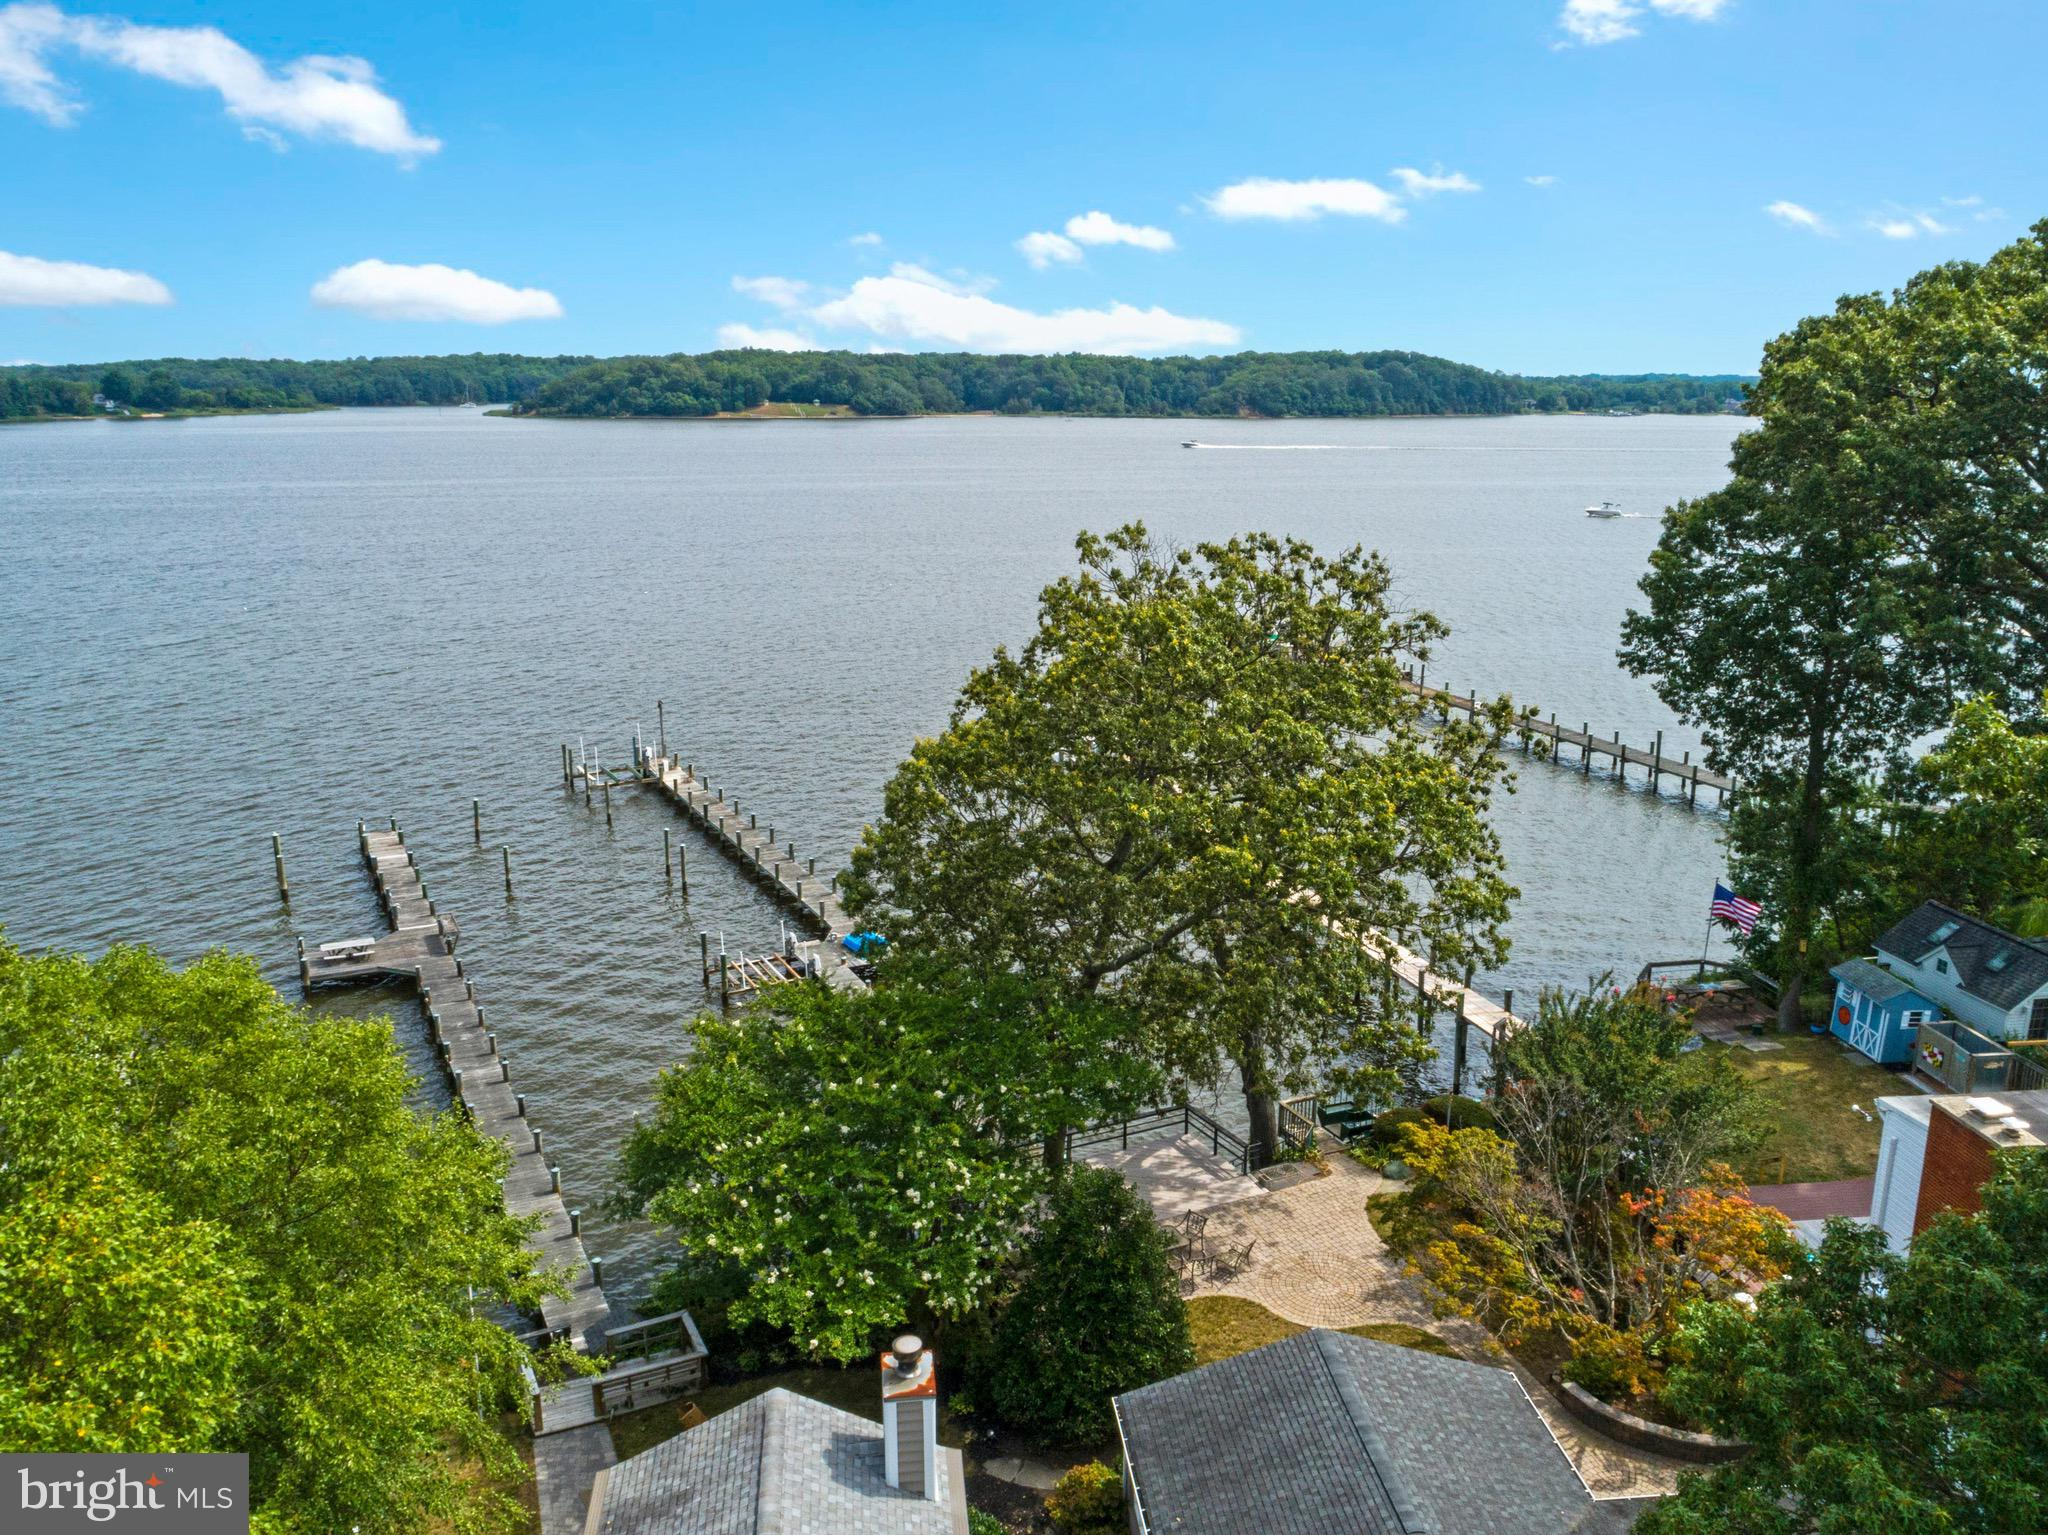 Great opportunity for a 4000+ SF waterfront new construction with expansive views .  Building permit in hand.   This home is to-be-built by Whitehall Building in the sought after community of Loch Haven with panoramic views of the South River.     The existing home will be torn down and the new house will be built.   The property already has a pier with two boat lifts and an electric tram to the pier from the deck.    The cantilevered deck is grandfathered in and provides additional outdoor living space.   The builder is not cutting corners - the base price is inclusive of Hardie Siding, Andersen windows, hardwood floors, ceramic bathrooms, granite countertops, 9' ceiling on the main and upper levels and a fireplace as well as a finished basement.     The open family room, dining area and kitchen all look out to the water.     The kitchen island is the perfect central location of the space and there is a pantry/mud room between the garage and kitchen.   Screened porch on the water side.   The upper level has a laundry room, 3 bedrooms with walk in closets and 3 full bathrooms.   There is a home office on the main level.   The above grade square footage is 3210 and with the basement is 4325.  As far as the views, they are amazing.    This property is located at one of the wider sections of the river the house looks directly over the river to Quiet Waters Park in Annapolis.    It's quick and easy access to the Bay or to waterfront restaurants.     The permits will be applied for once the Buyer (could be you!) decides on their final house design and plans.    You can build this house or any other that will fit into the lot building footprint.     The builder is flexible to work with your design preferences.    Construction-Perm financing or Cash.    $10,000 toward selections/finishes for using the builder's preferred construction-perm lenders and title company.     The builder has already sought out the lenders with the best construction-perm programs.    The photos he